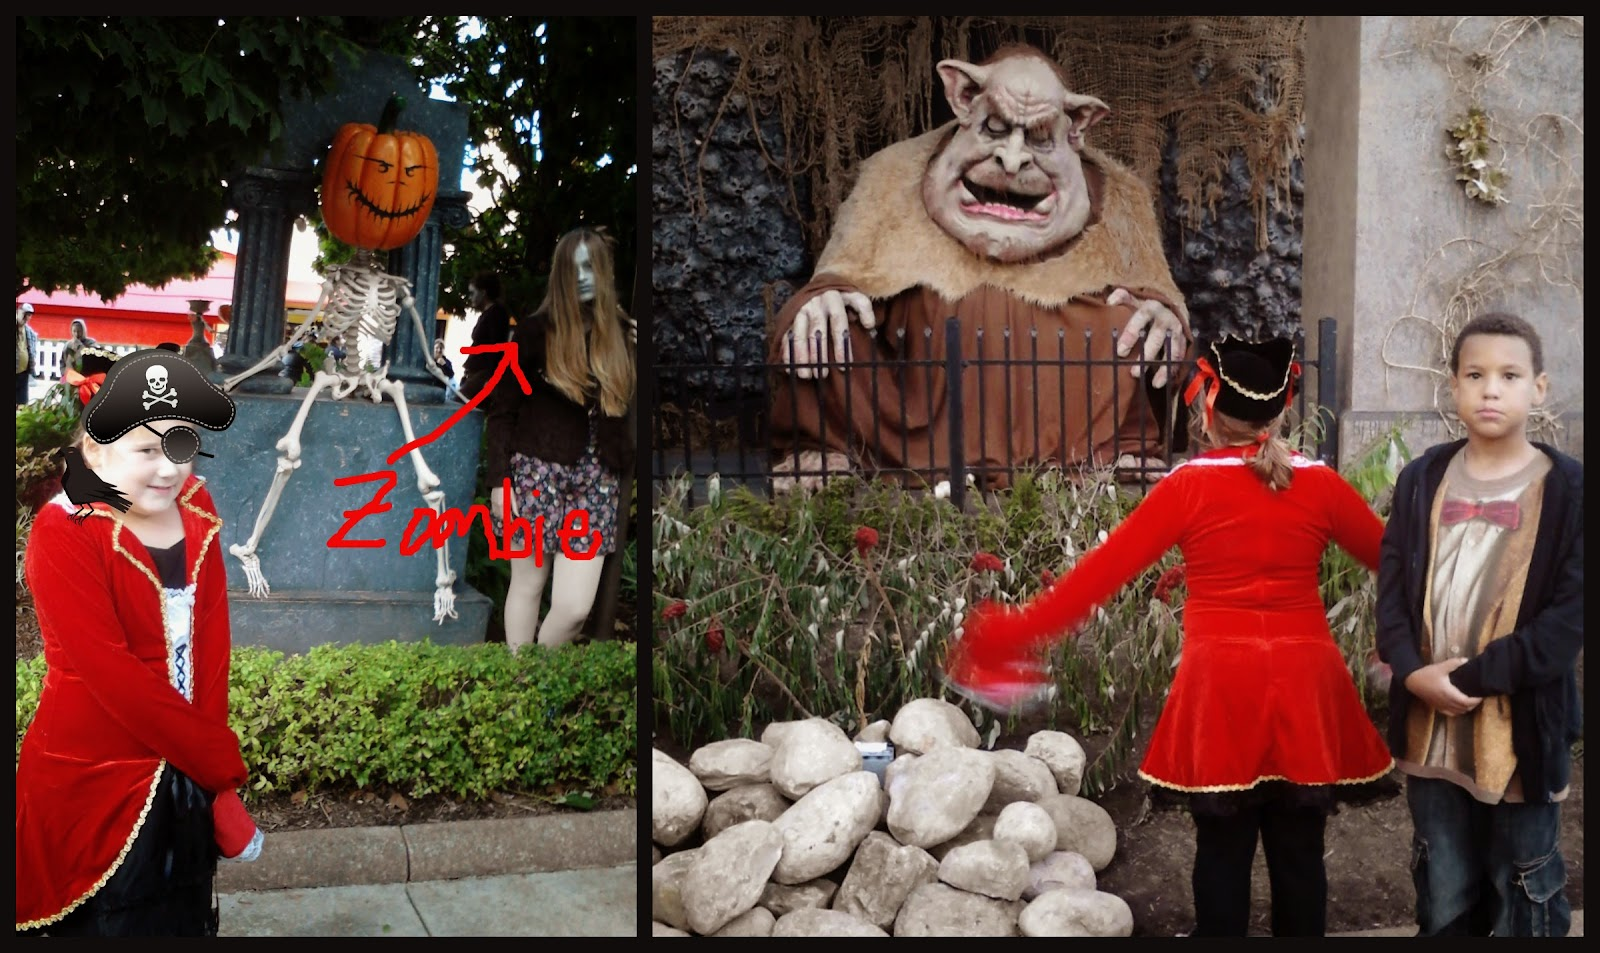 Zombies and Ogre at Halloweekends